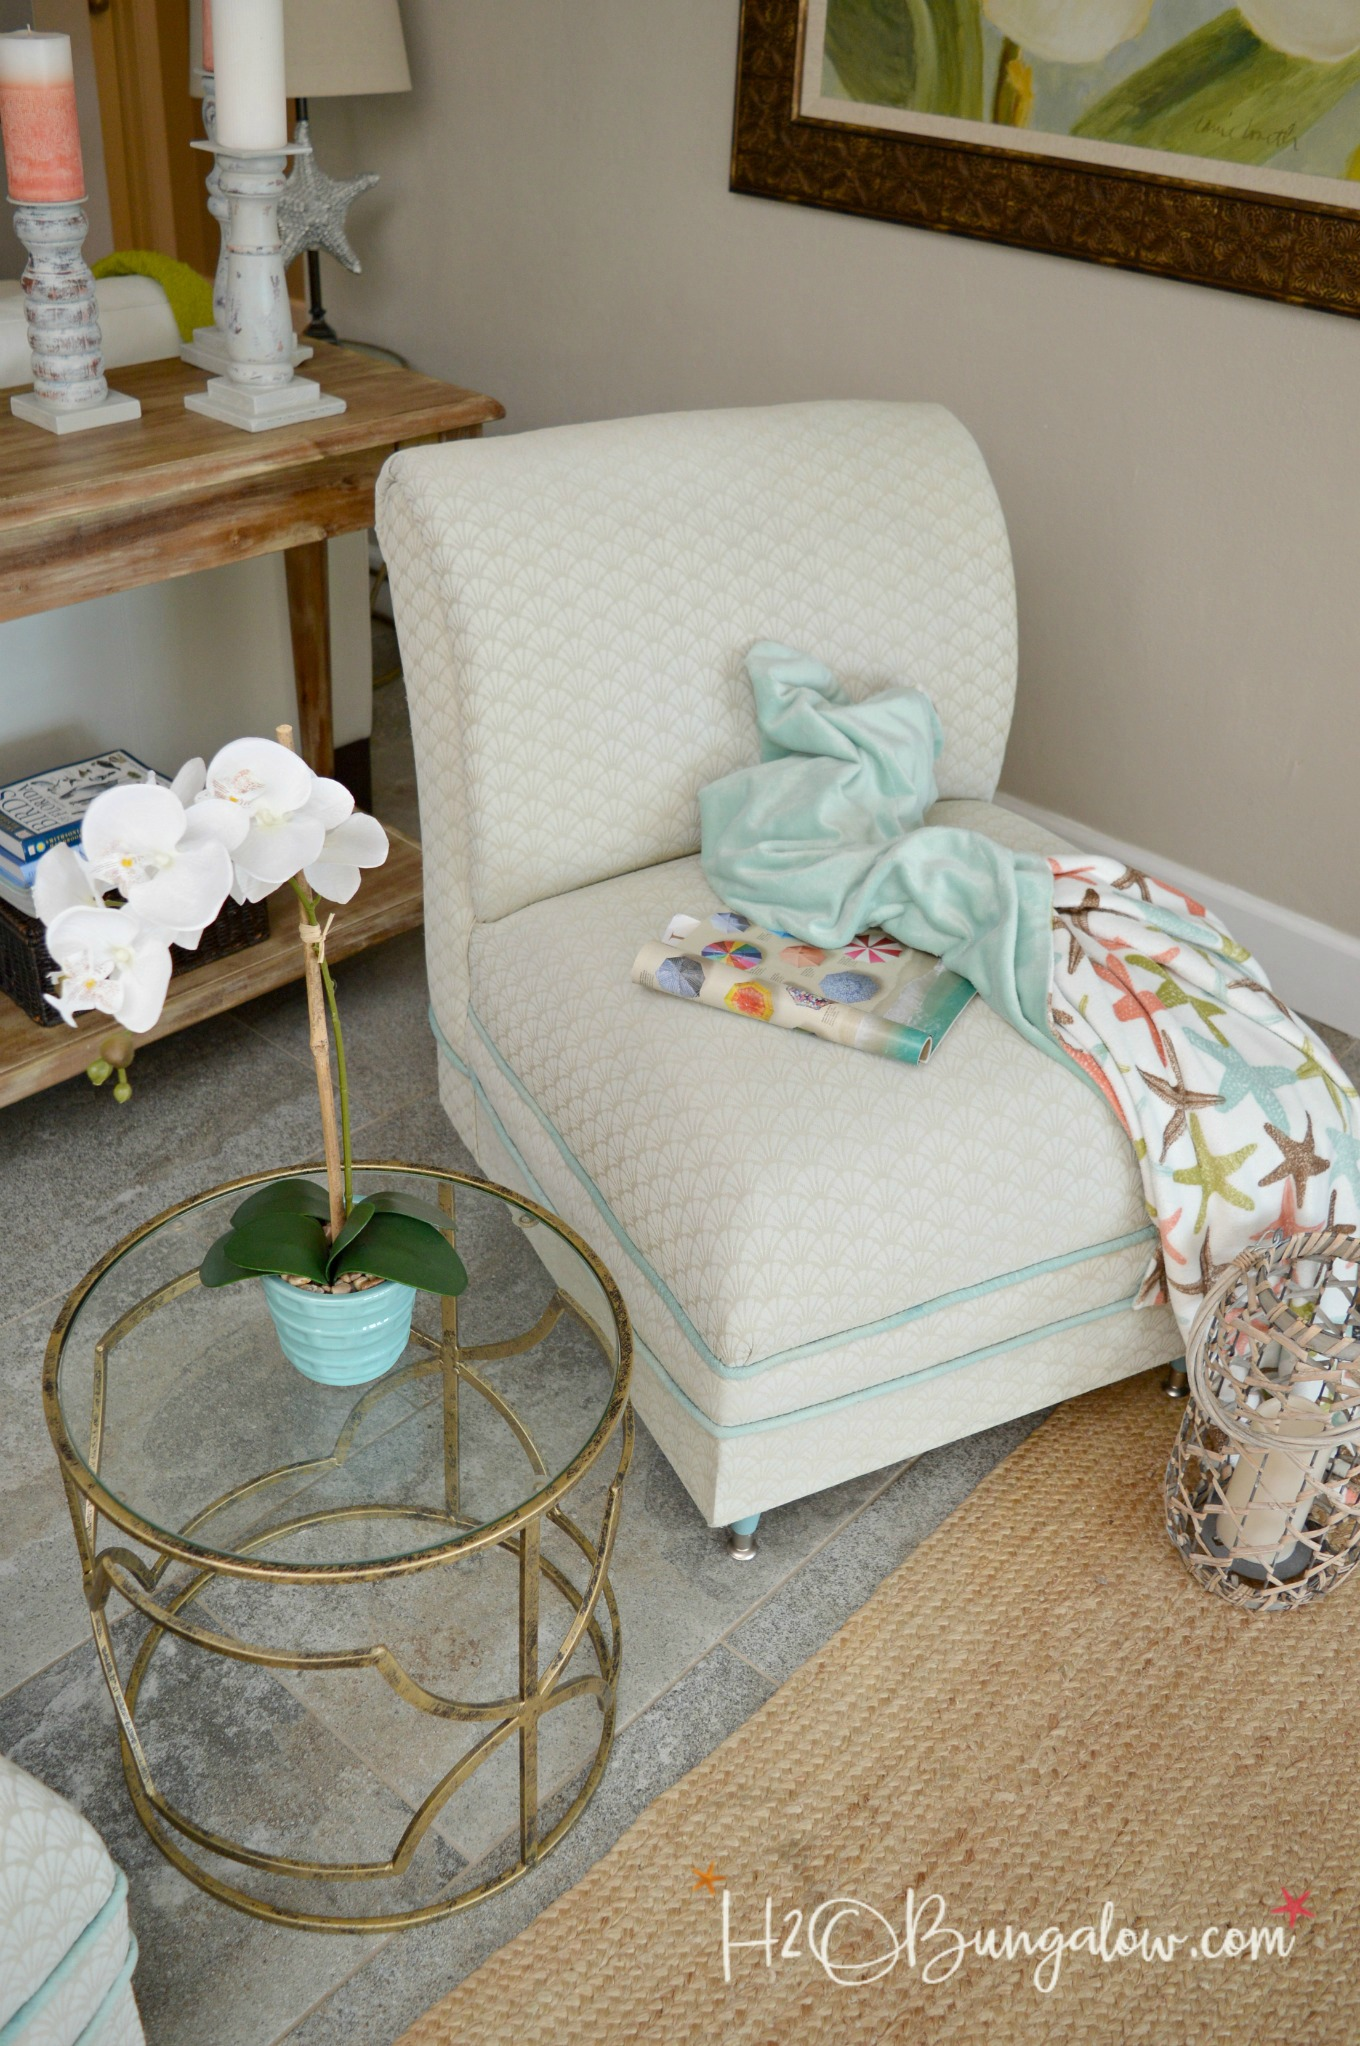 diy painted windsor chairs disney princess upholstered chair australia makeover tutorial h20bungalow